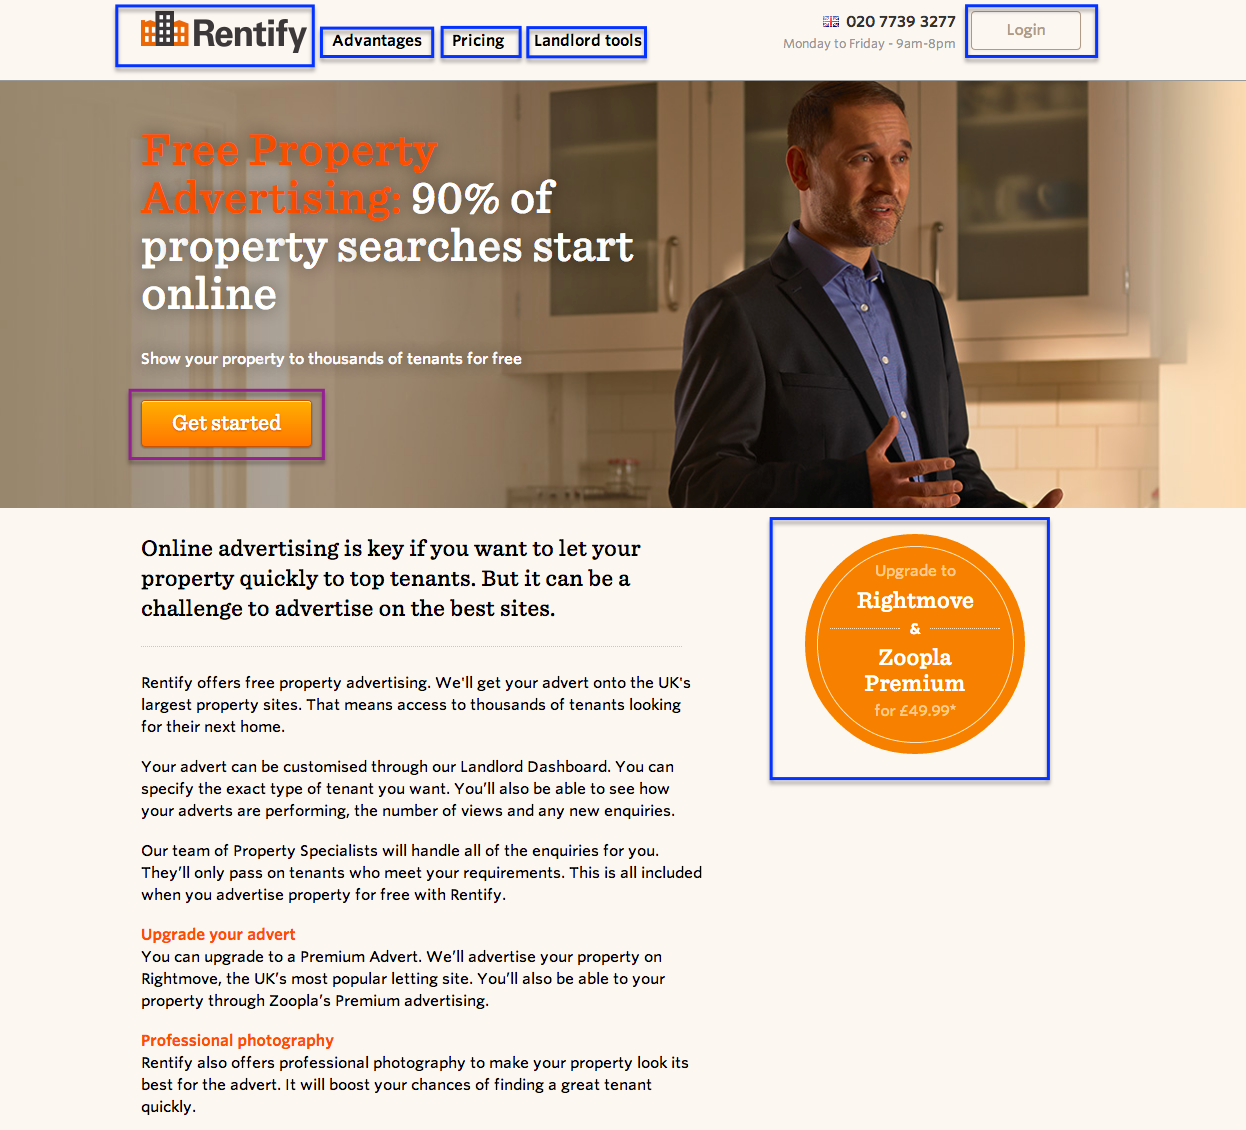 Rentify landing page example